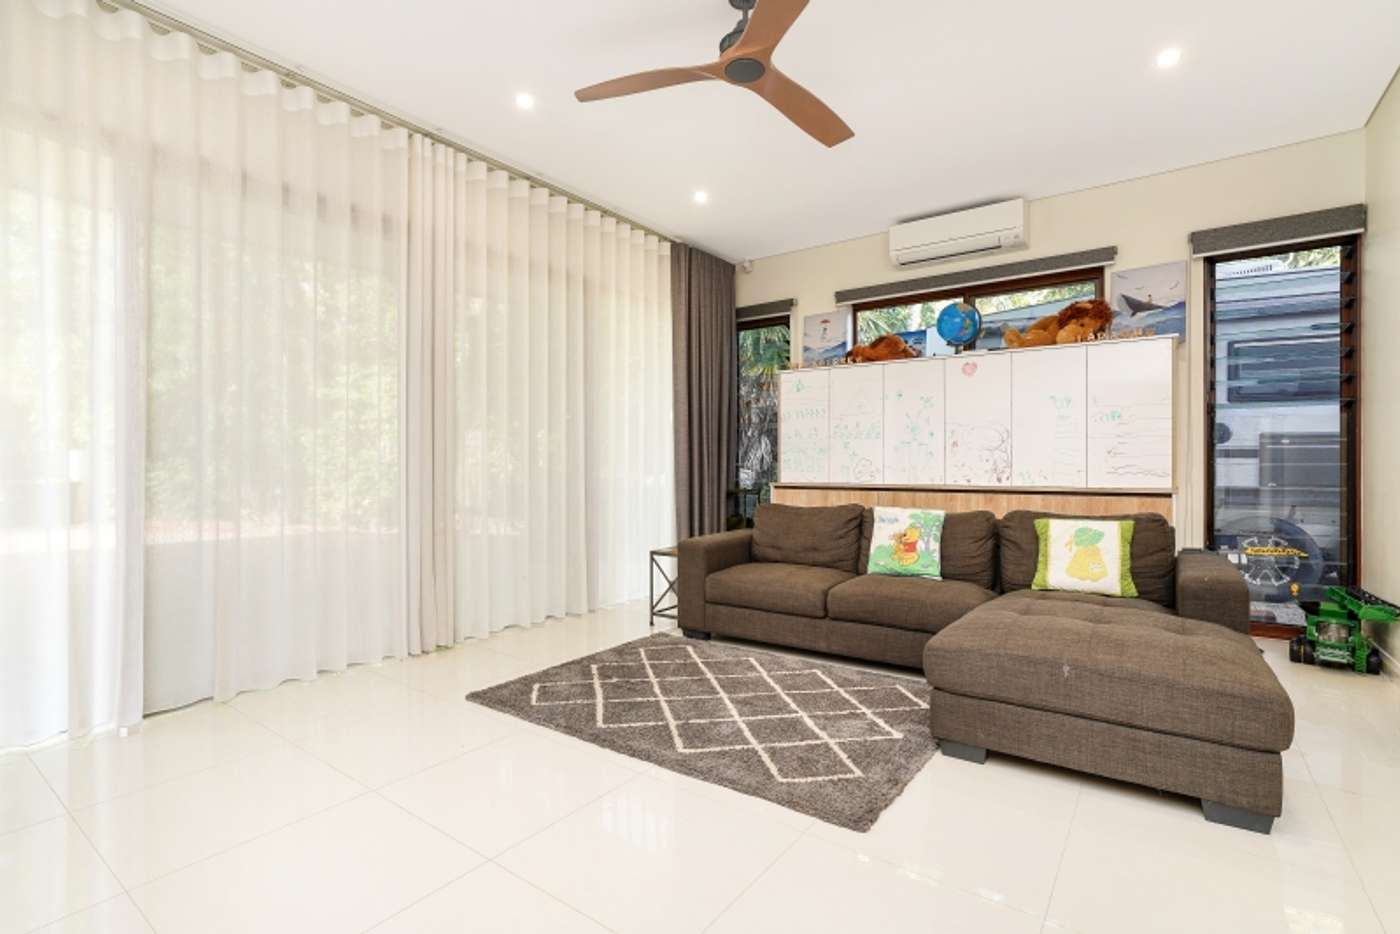 Seventh view of Homely house listing, 48 Chrisp Street, Rapid Creek NT 810